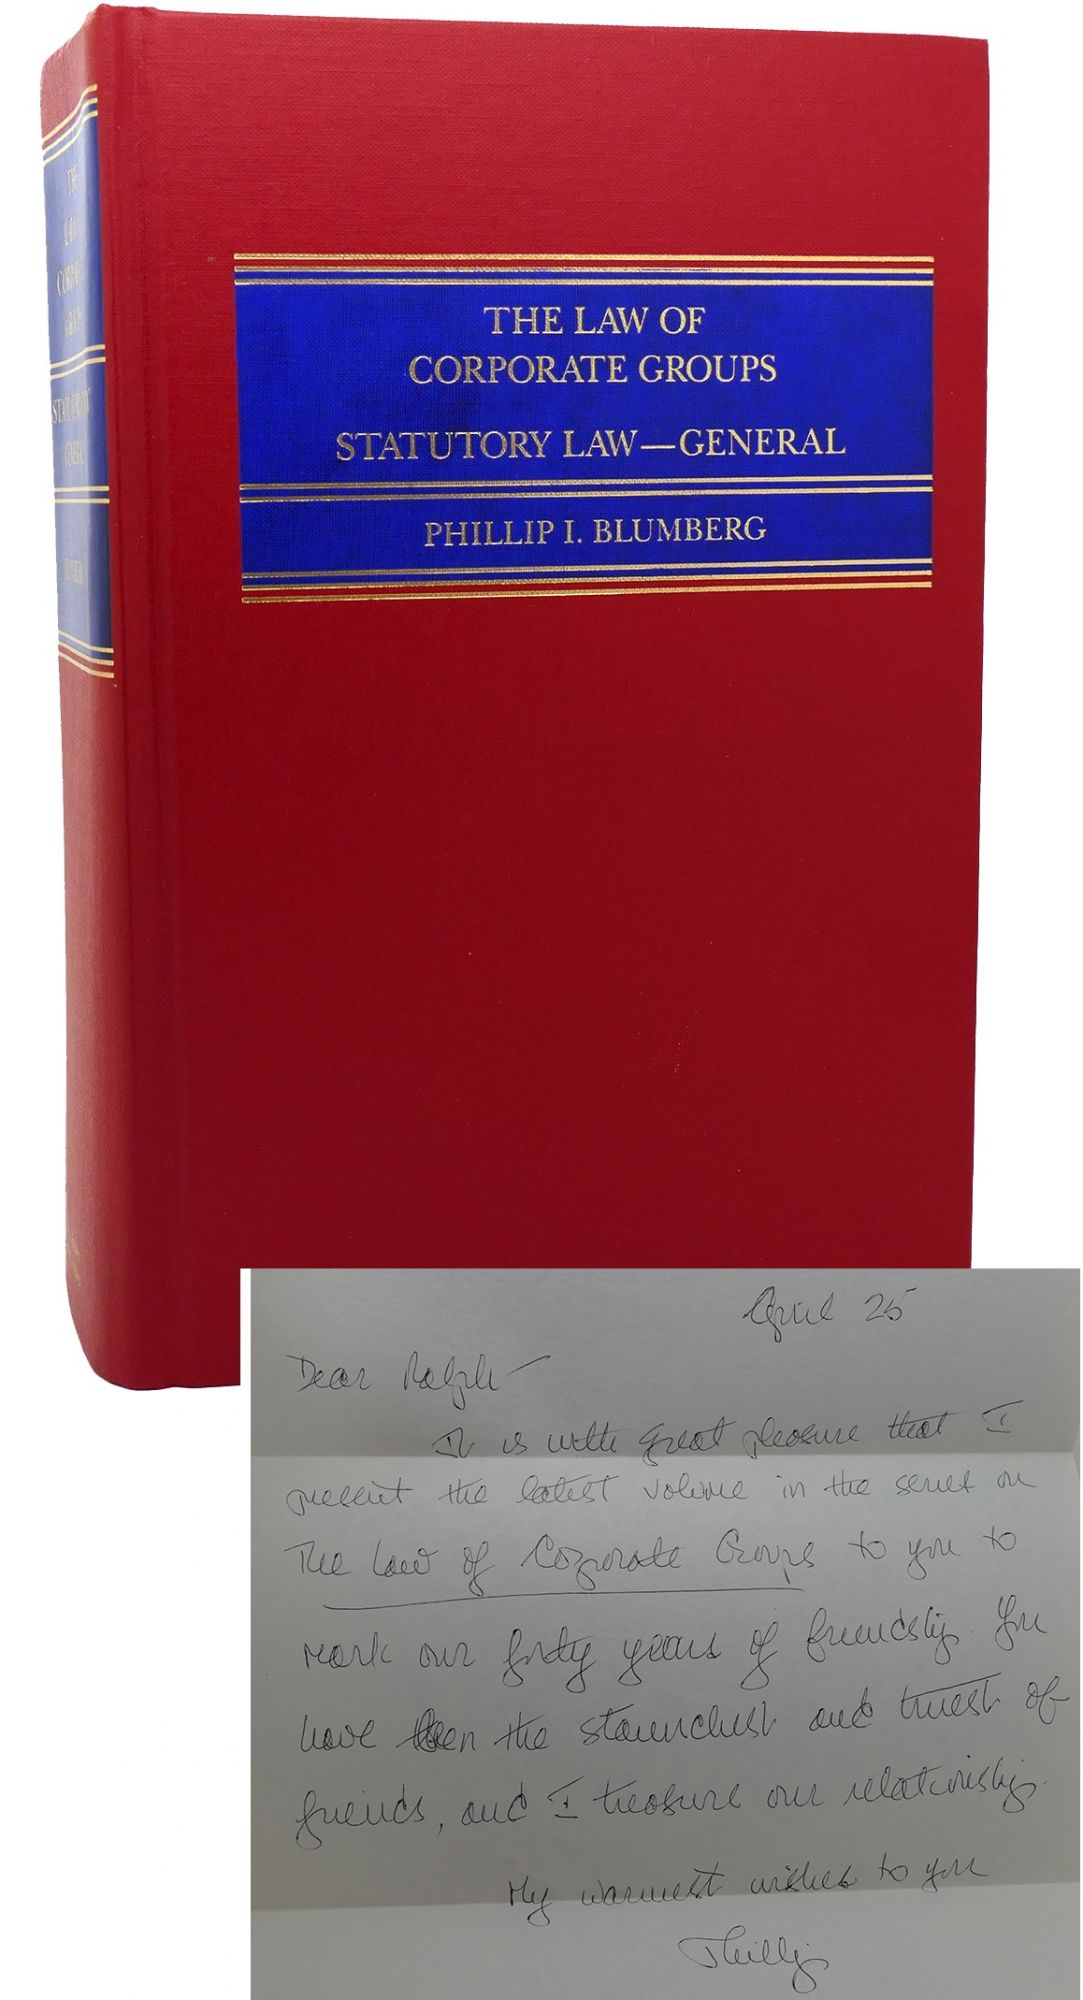 LAW OF CORPORATE GROUPS Problems of Parent and Subsidiary Corporations  Under Statutory Law of General Application by Phillip I  Blumberg on Rare  Book